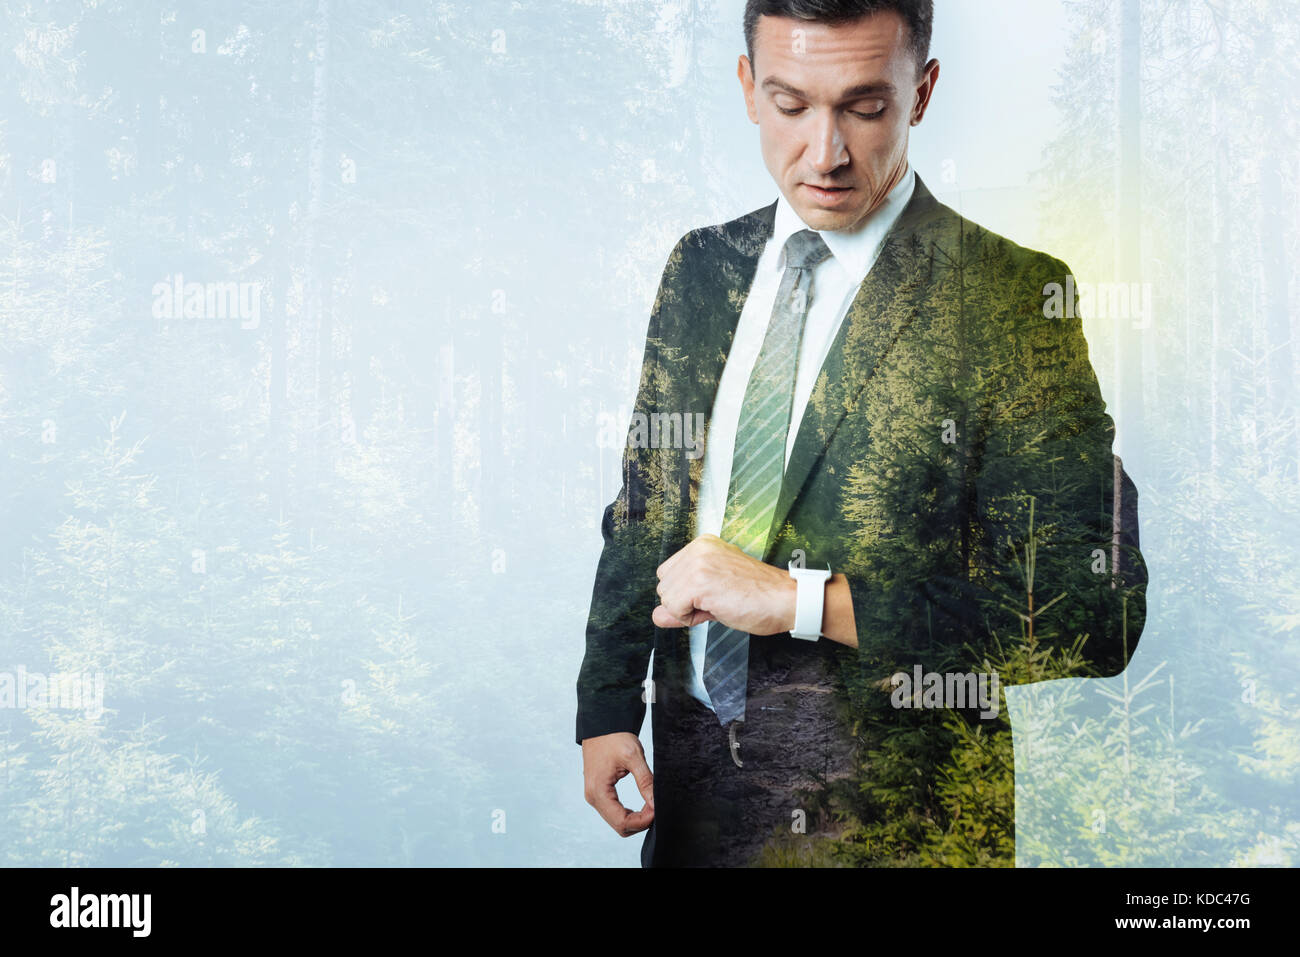 Elegant man checking time with a smart watch on his wrist - Stock Image